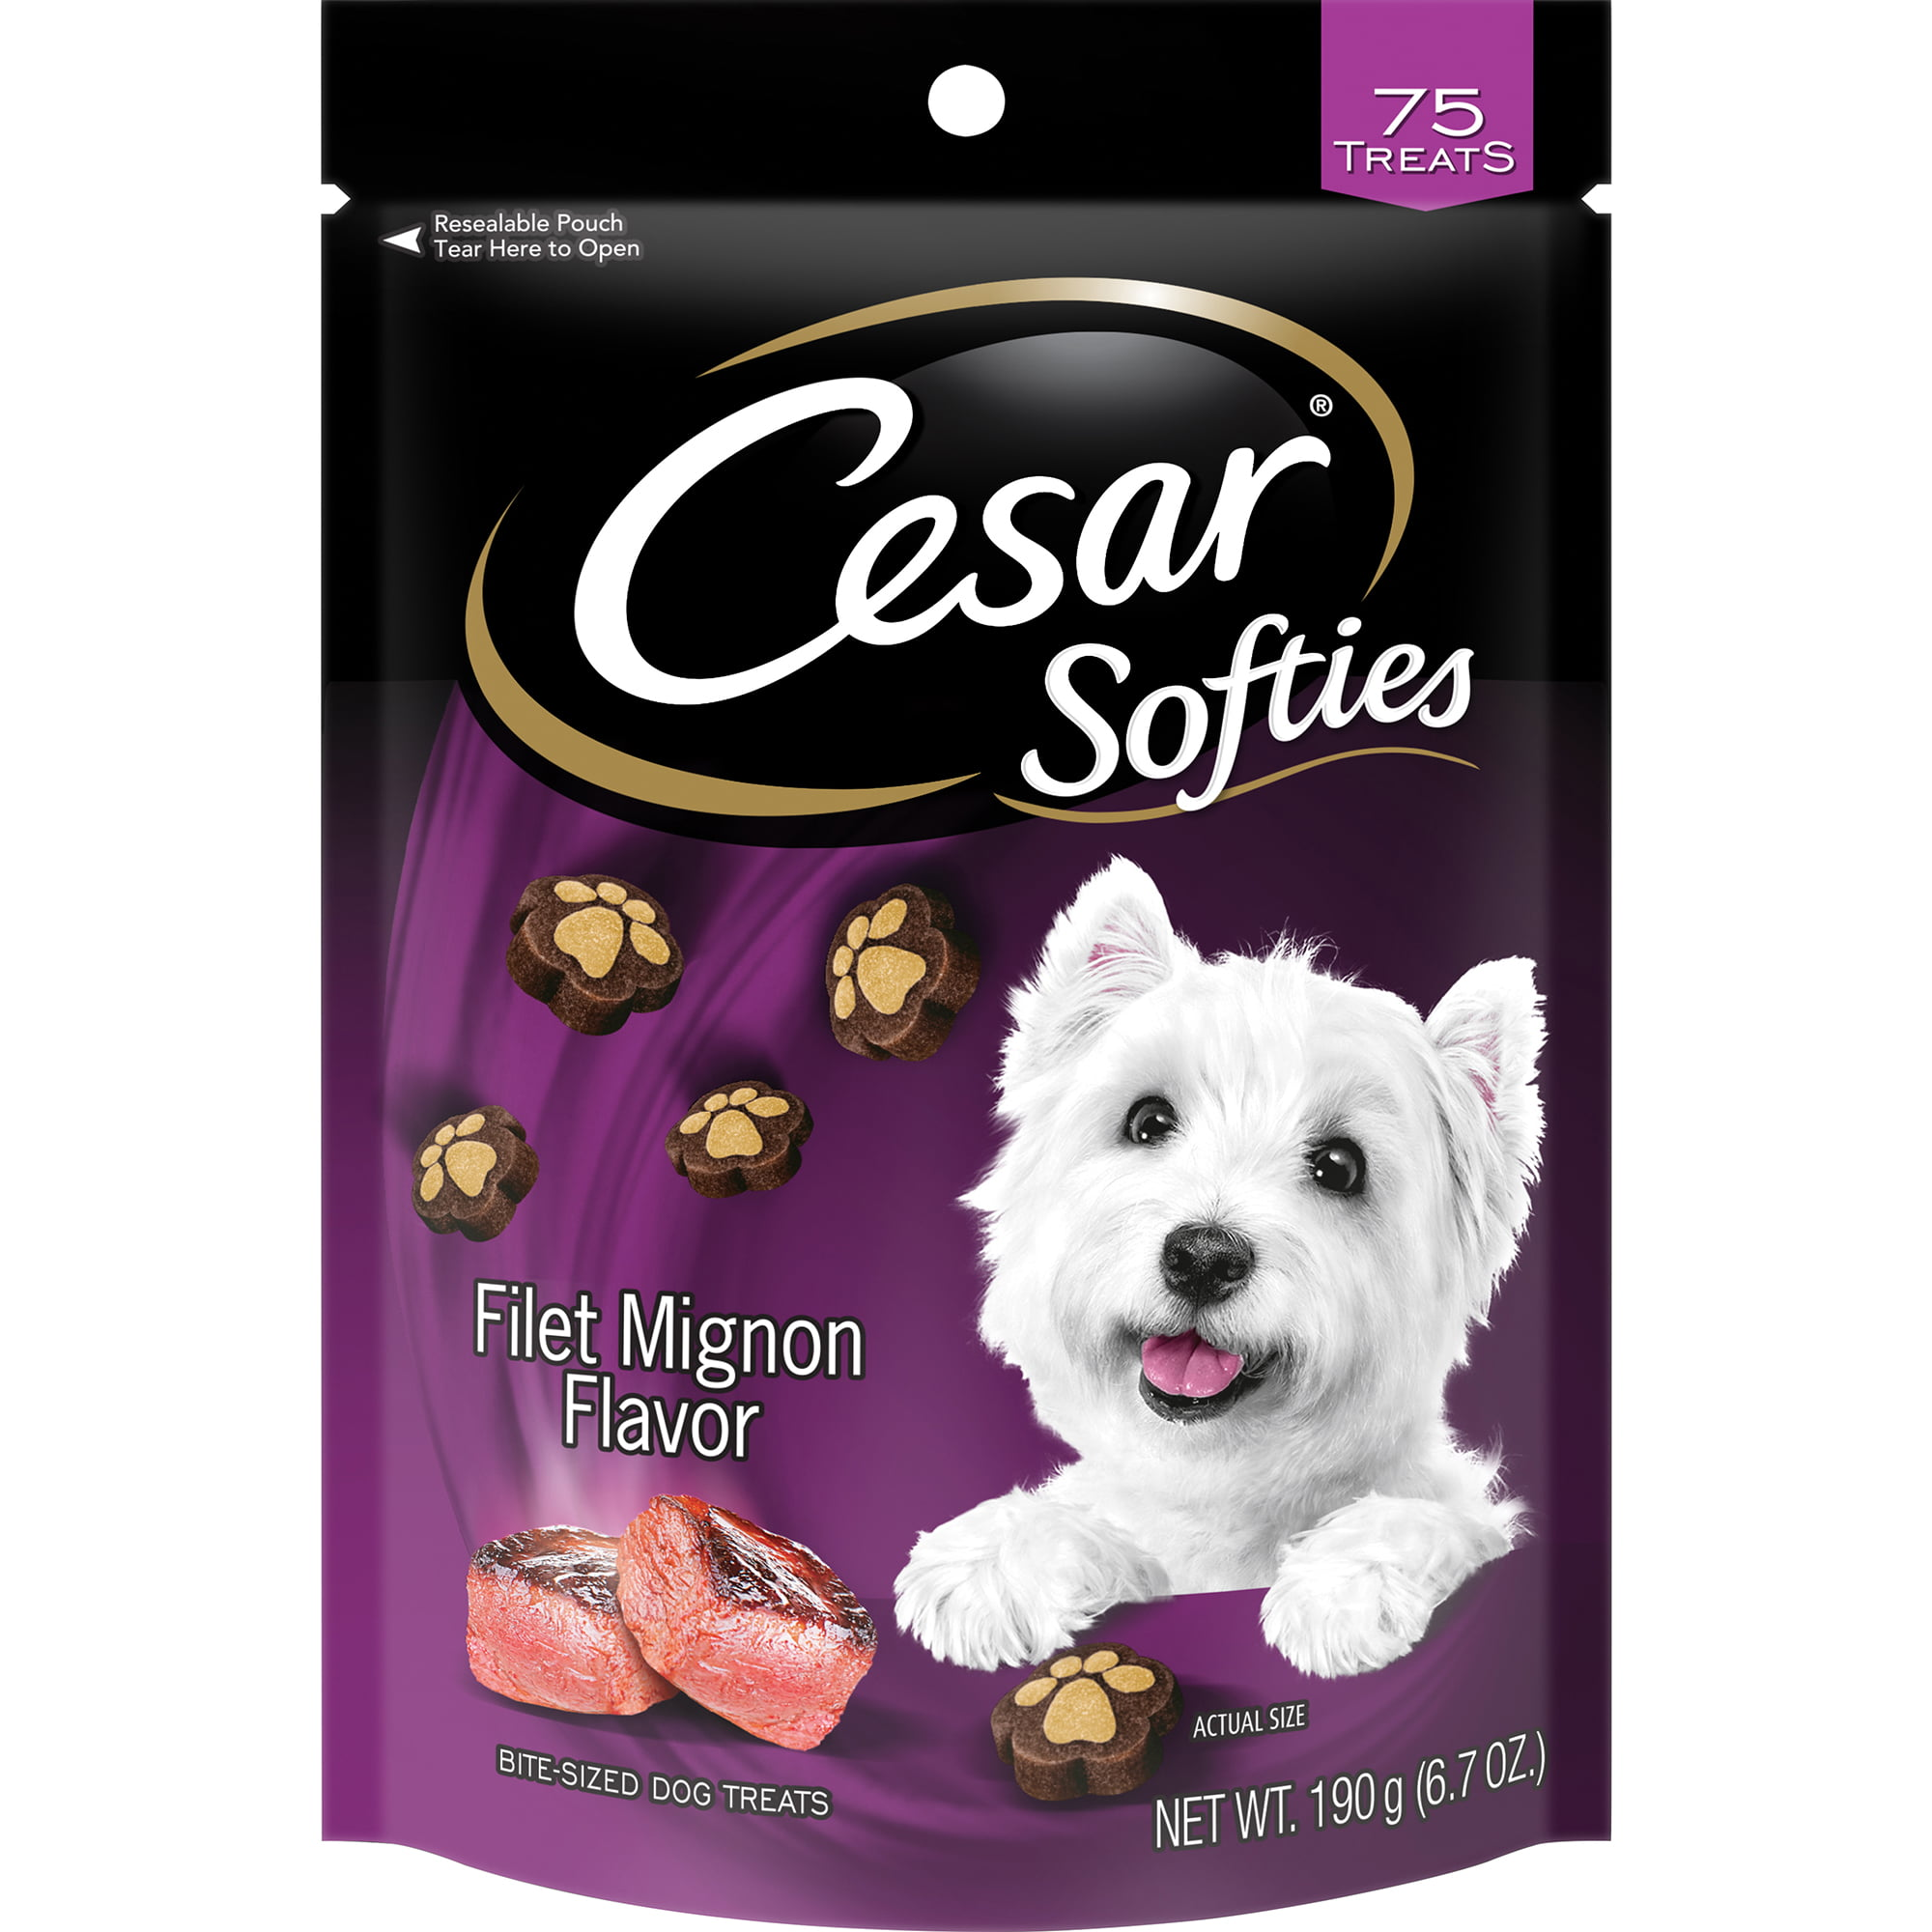 CESAR SOFTIES Filet Mignon Flavor Dog Treats 6.7 oz. 75 Treats by Mars Petcare